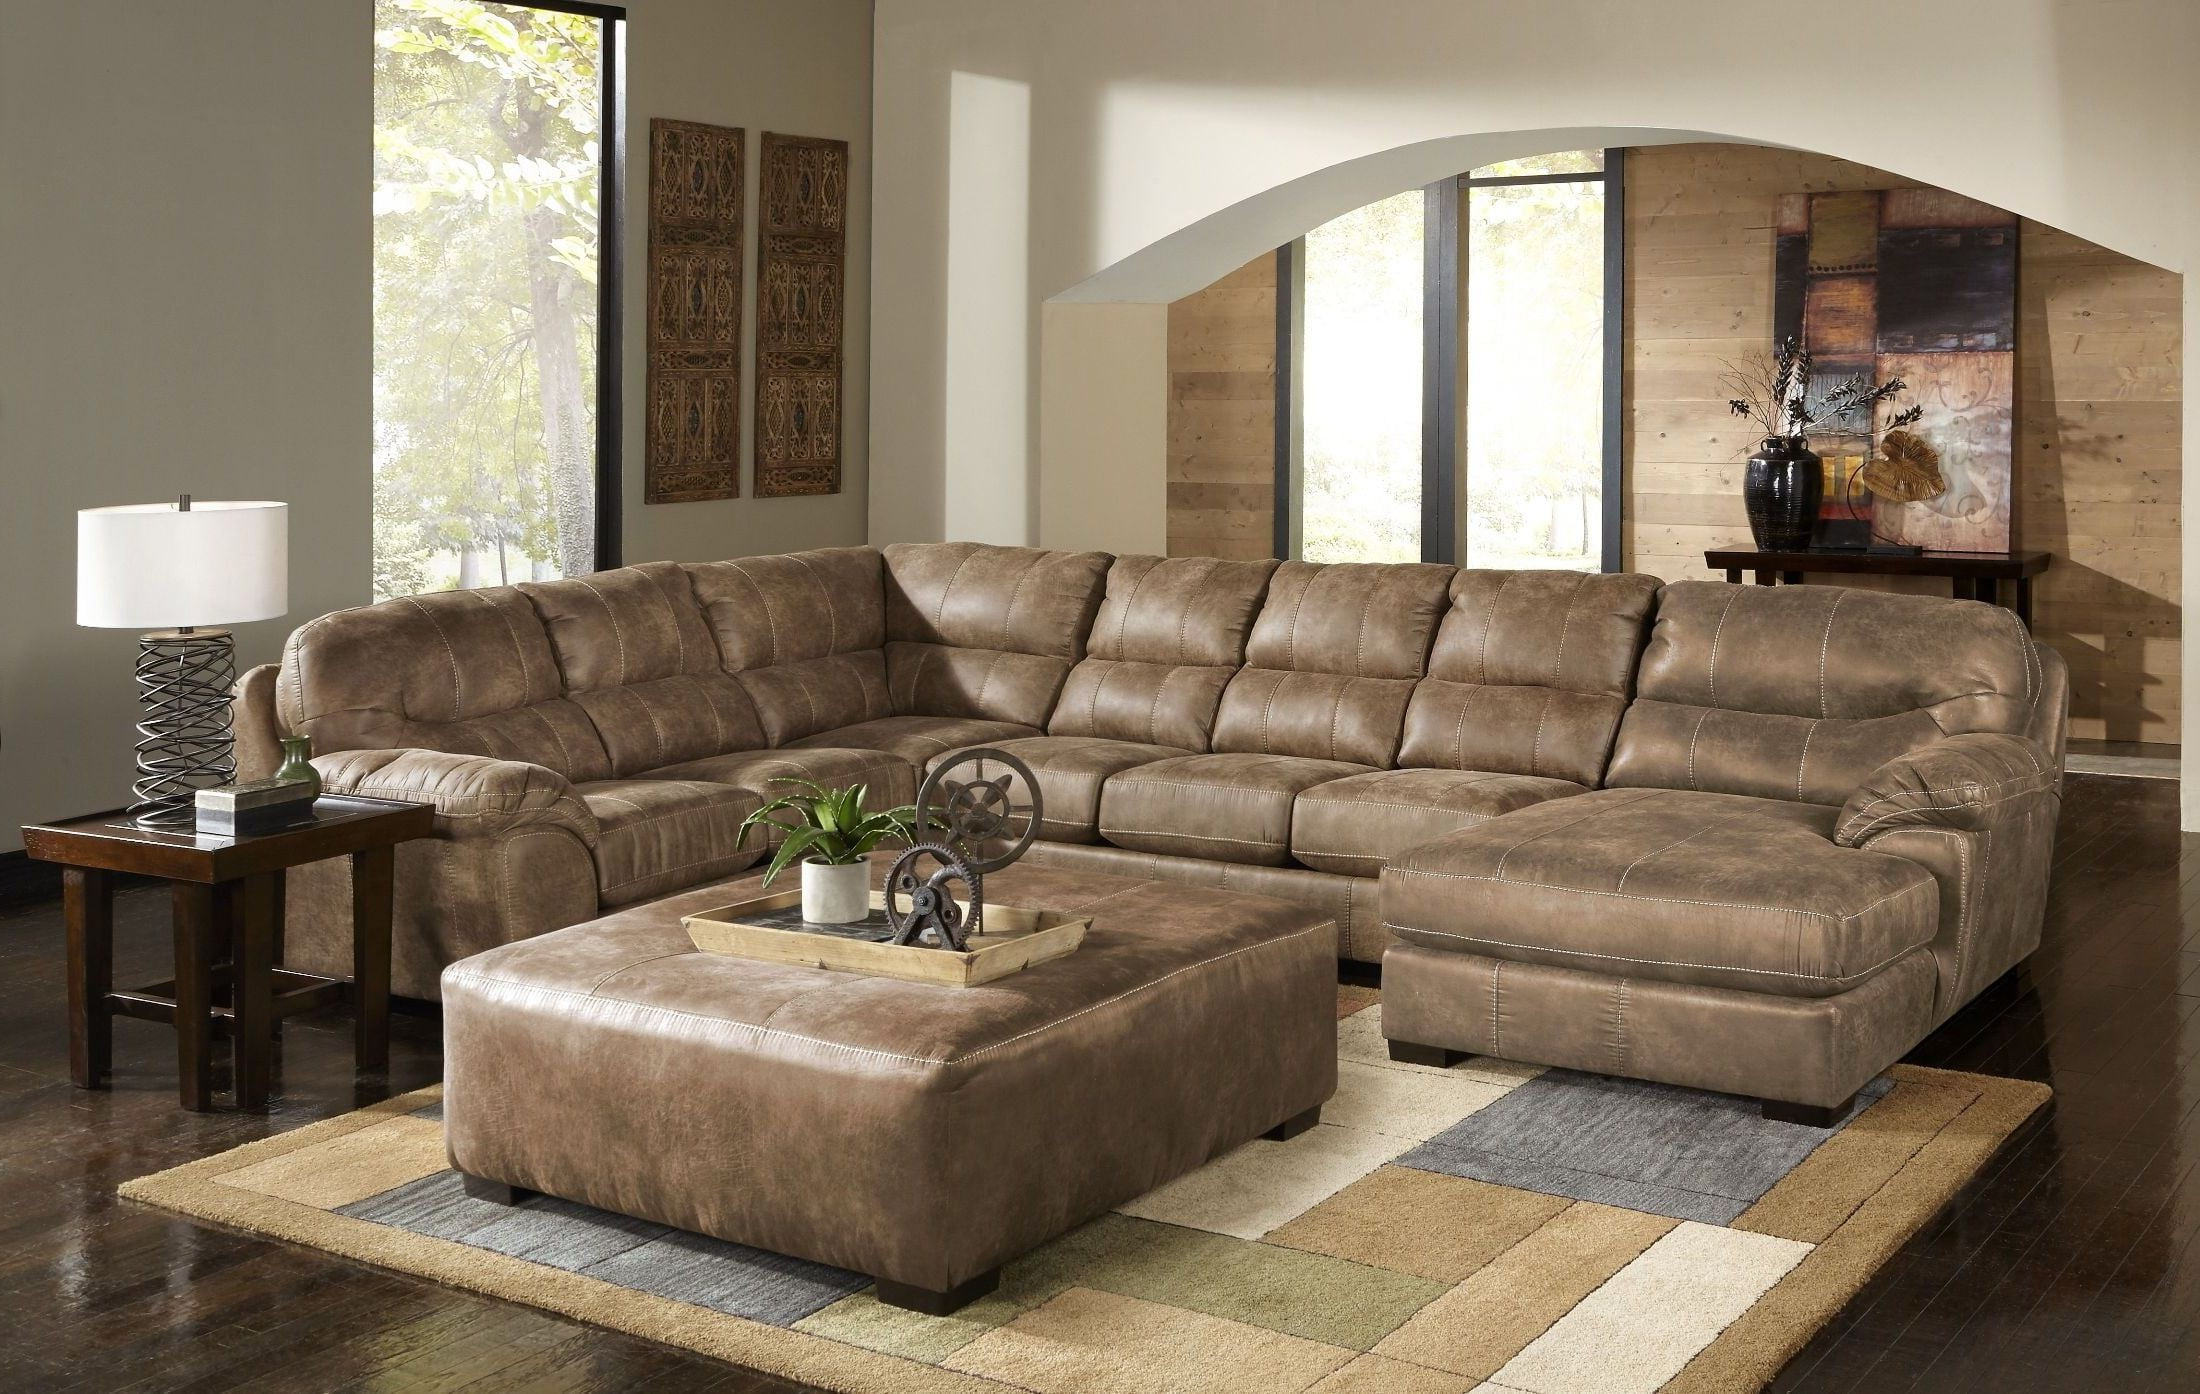 Best And Newest Grant Silt Laf Chaise Sectional, 4453 75 122749302749, Jackson With Regard To Avery 2 Piece Sectionals With Raf Armless Chaise (Gallery 12 of 20)